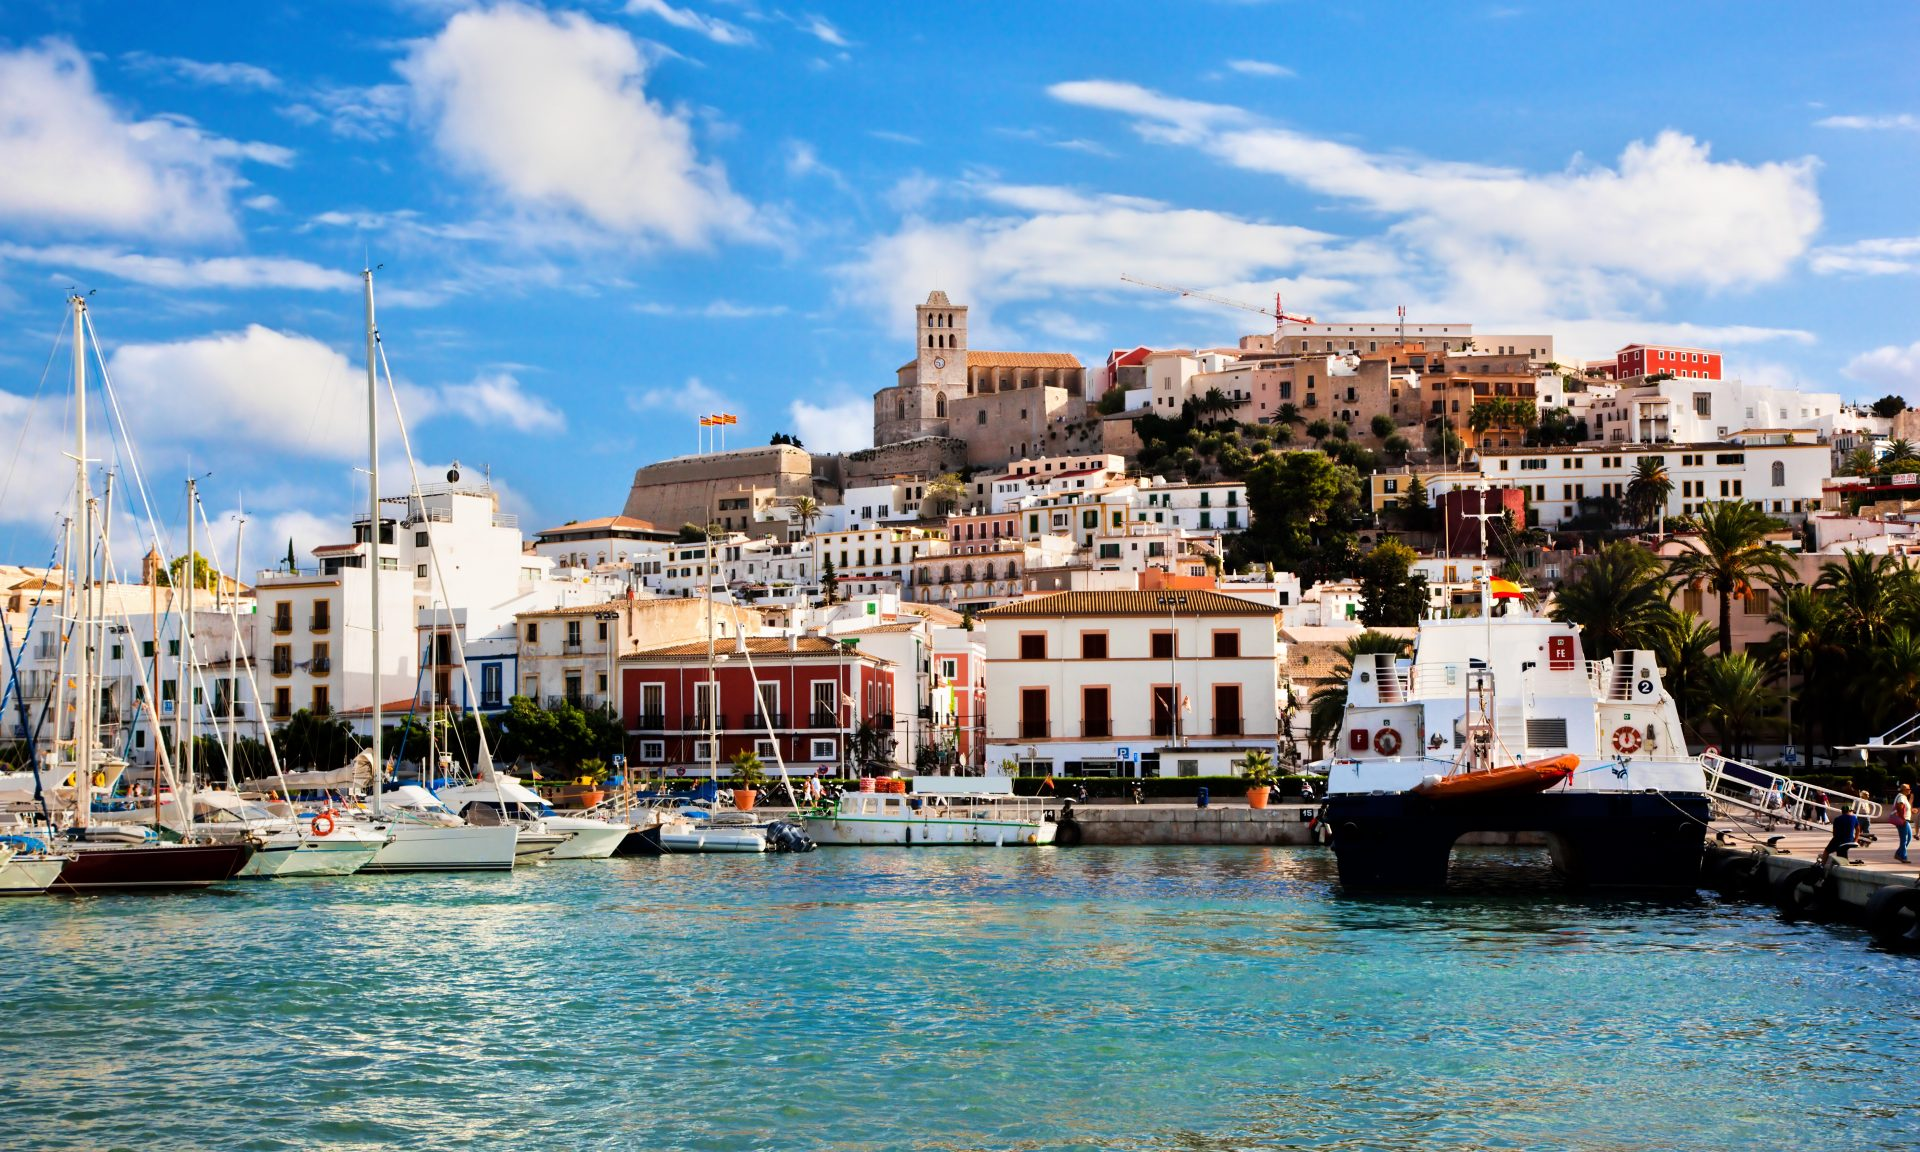 More than just the party centre of the Balearic Islands – the historic centre of Ibiza's capital has been classified by UNESCO.